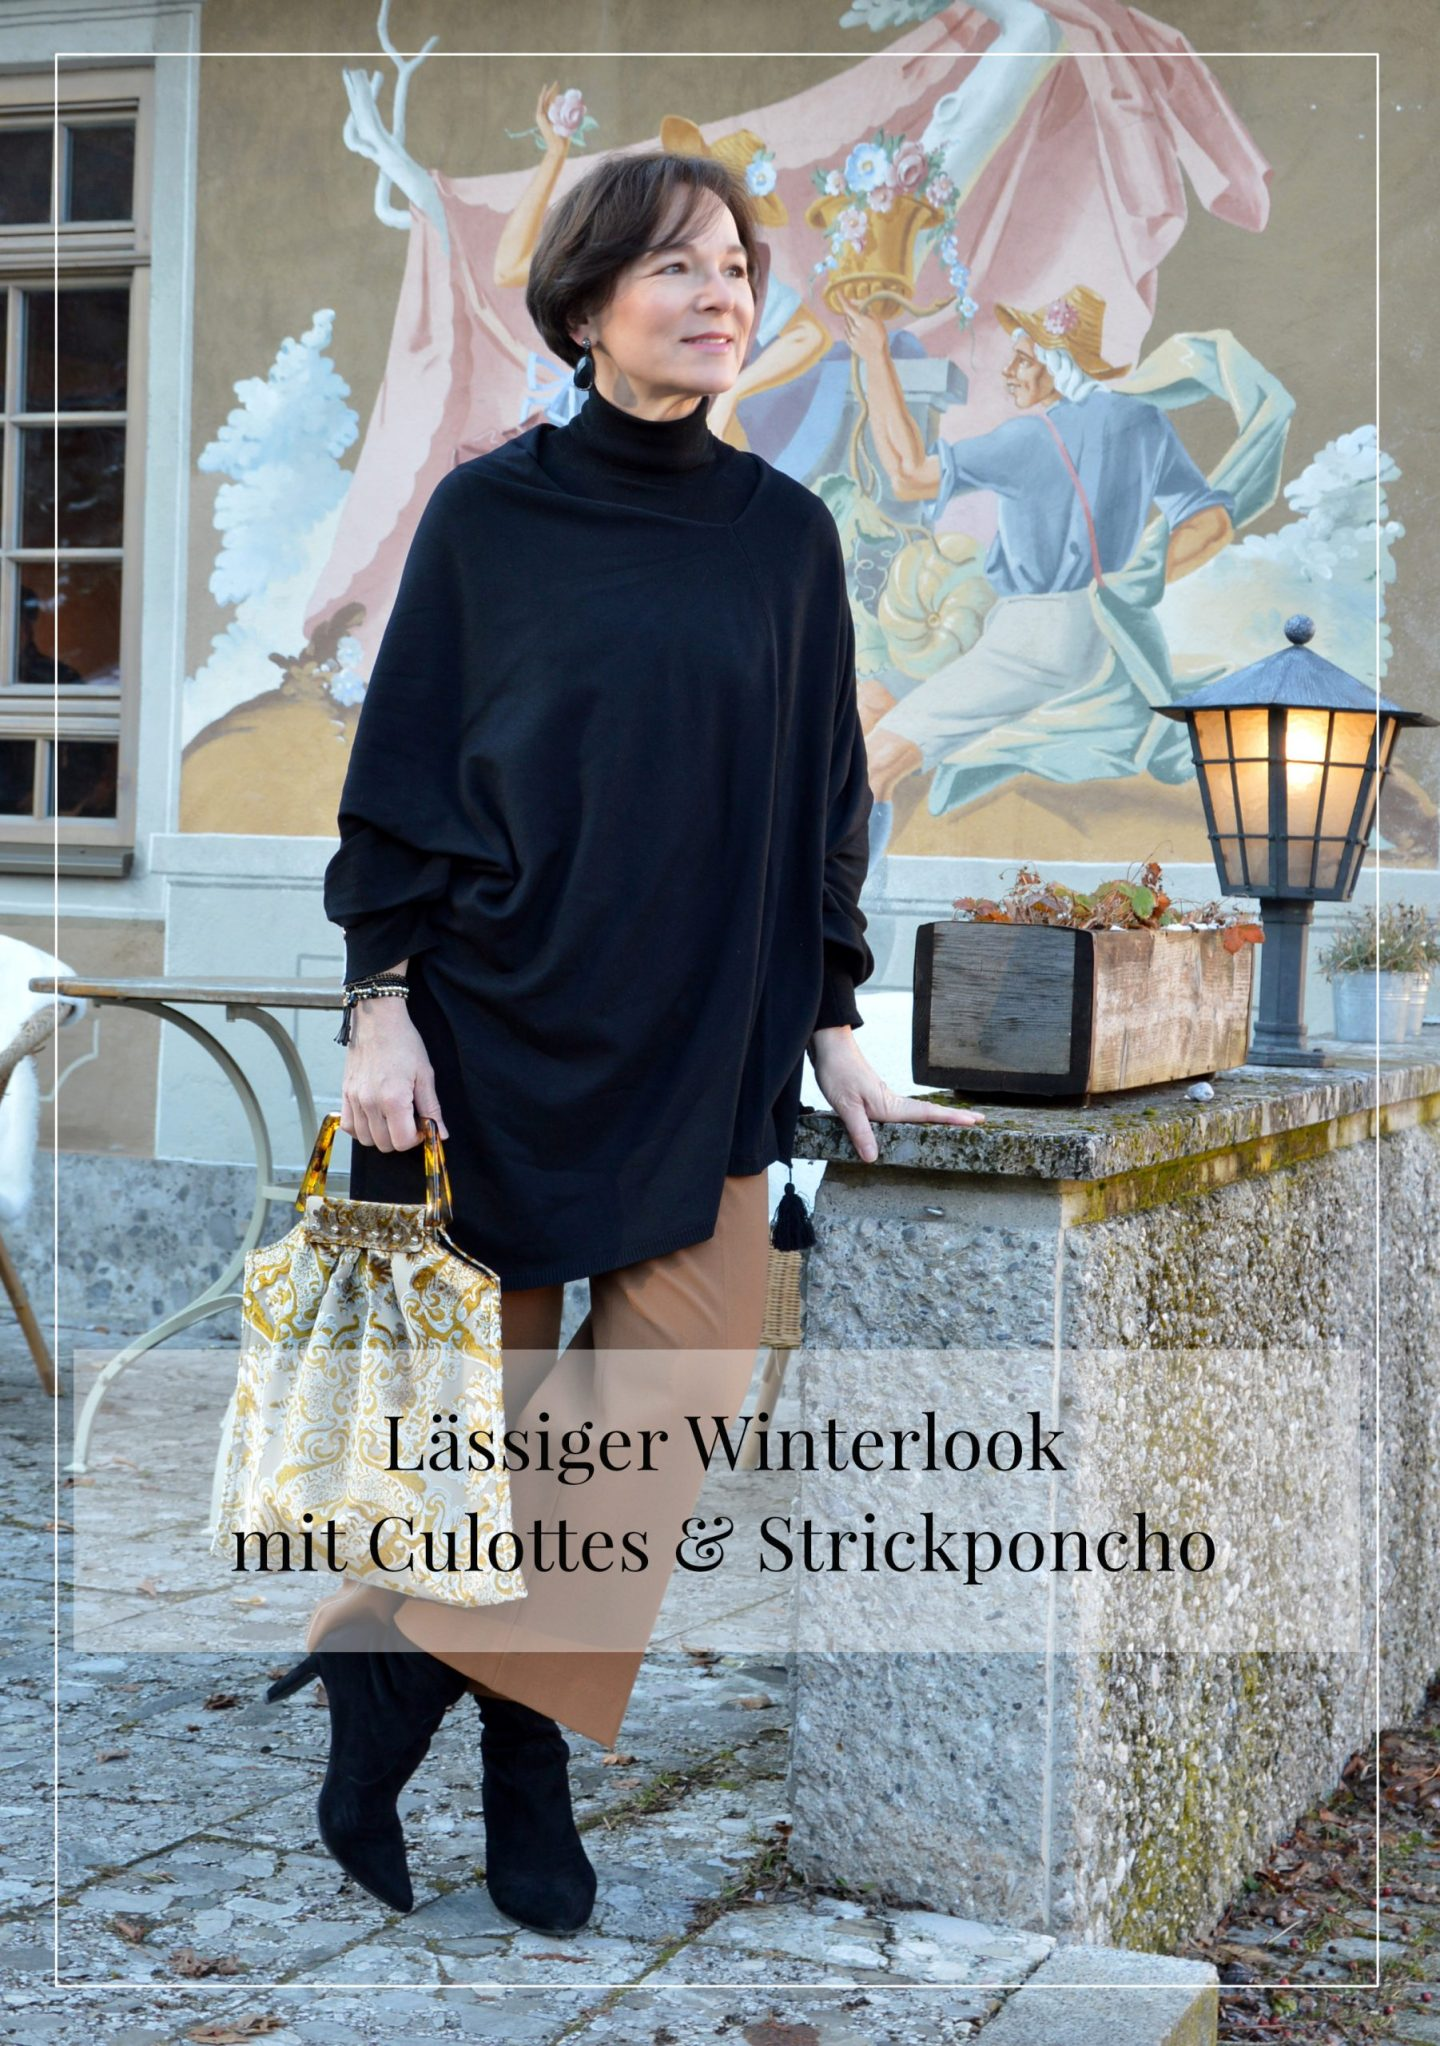 LadyofStyle Winterlook Culottes Strickponcho 50plus